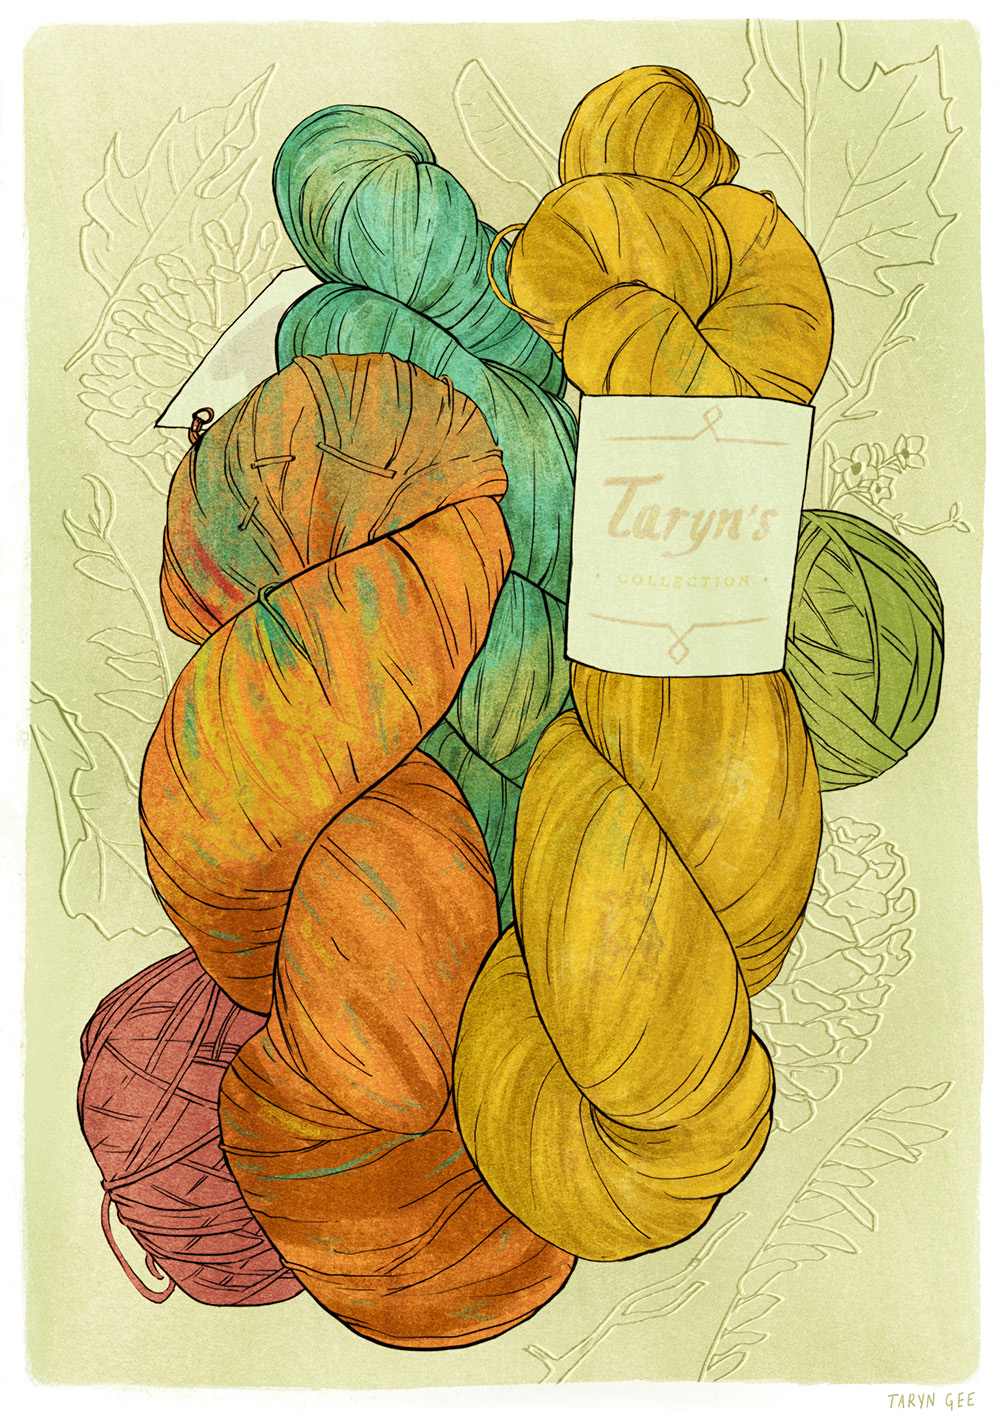 """Yarn + Autumn"" by Taryn Gee"